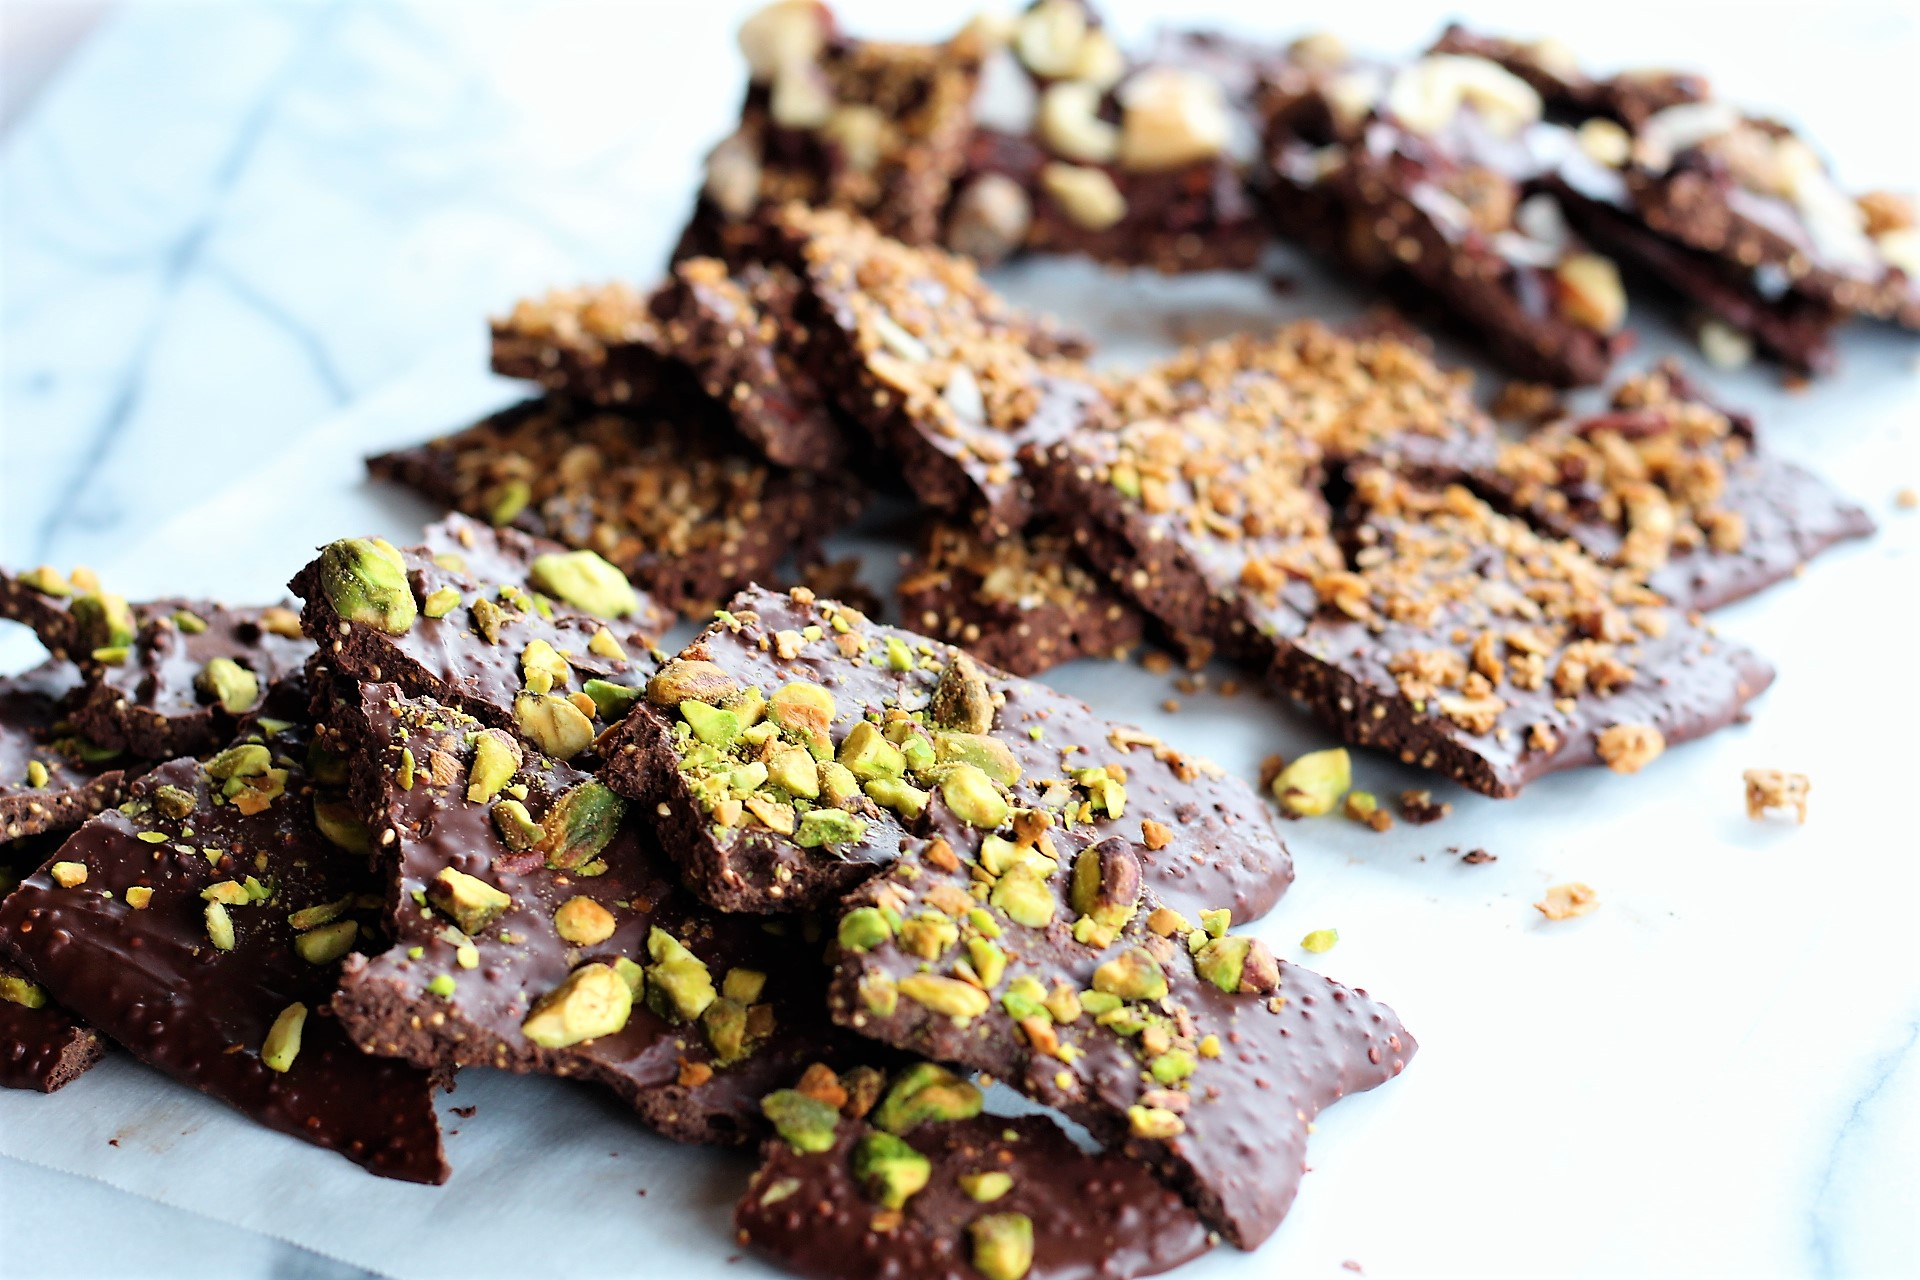 Pistachio Almond Chocolate Bark